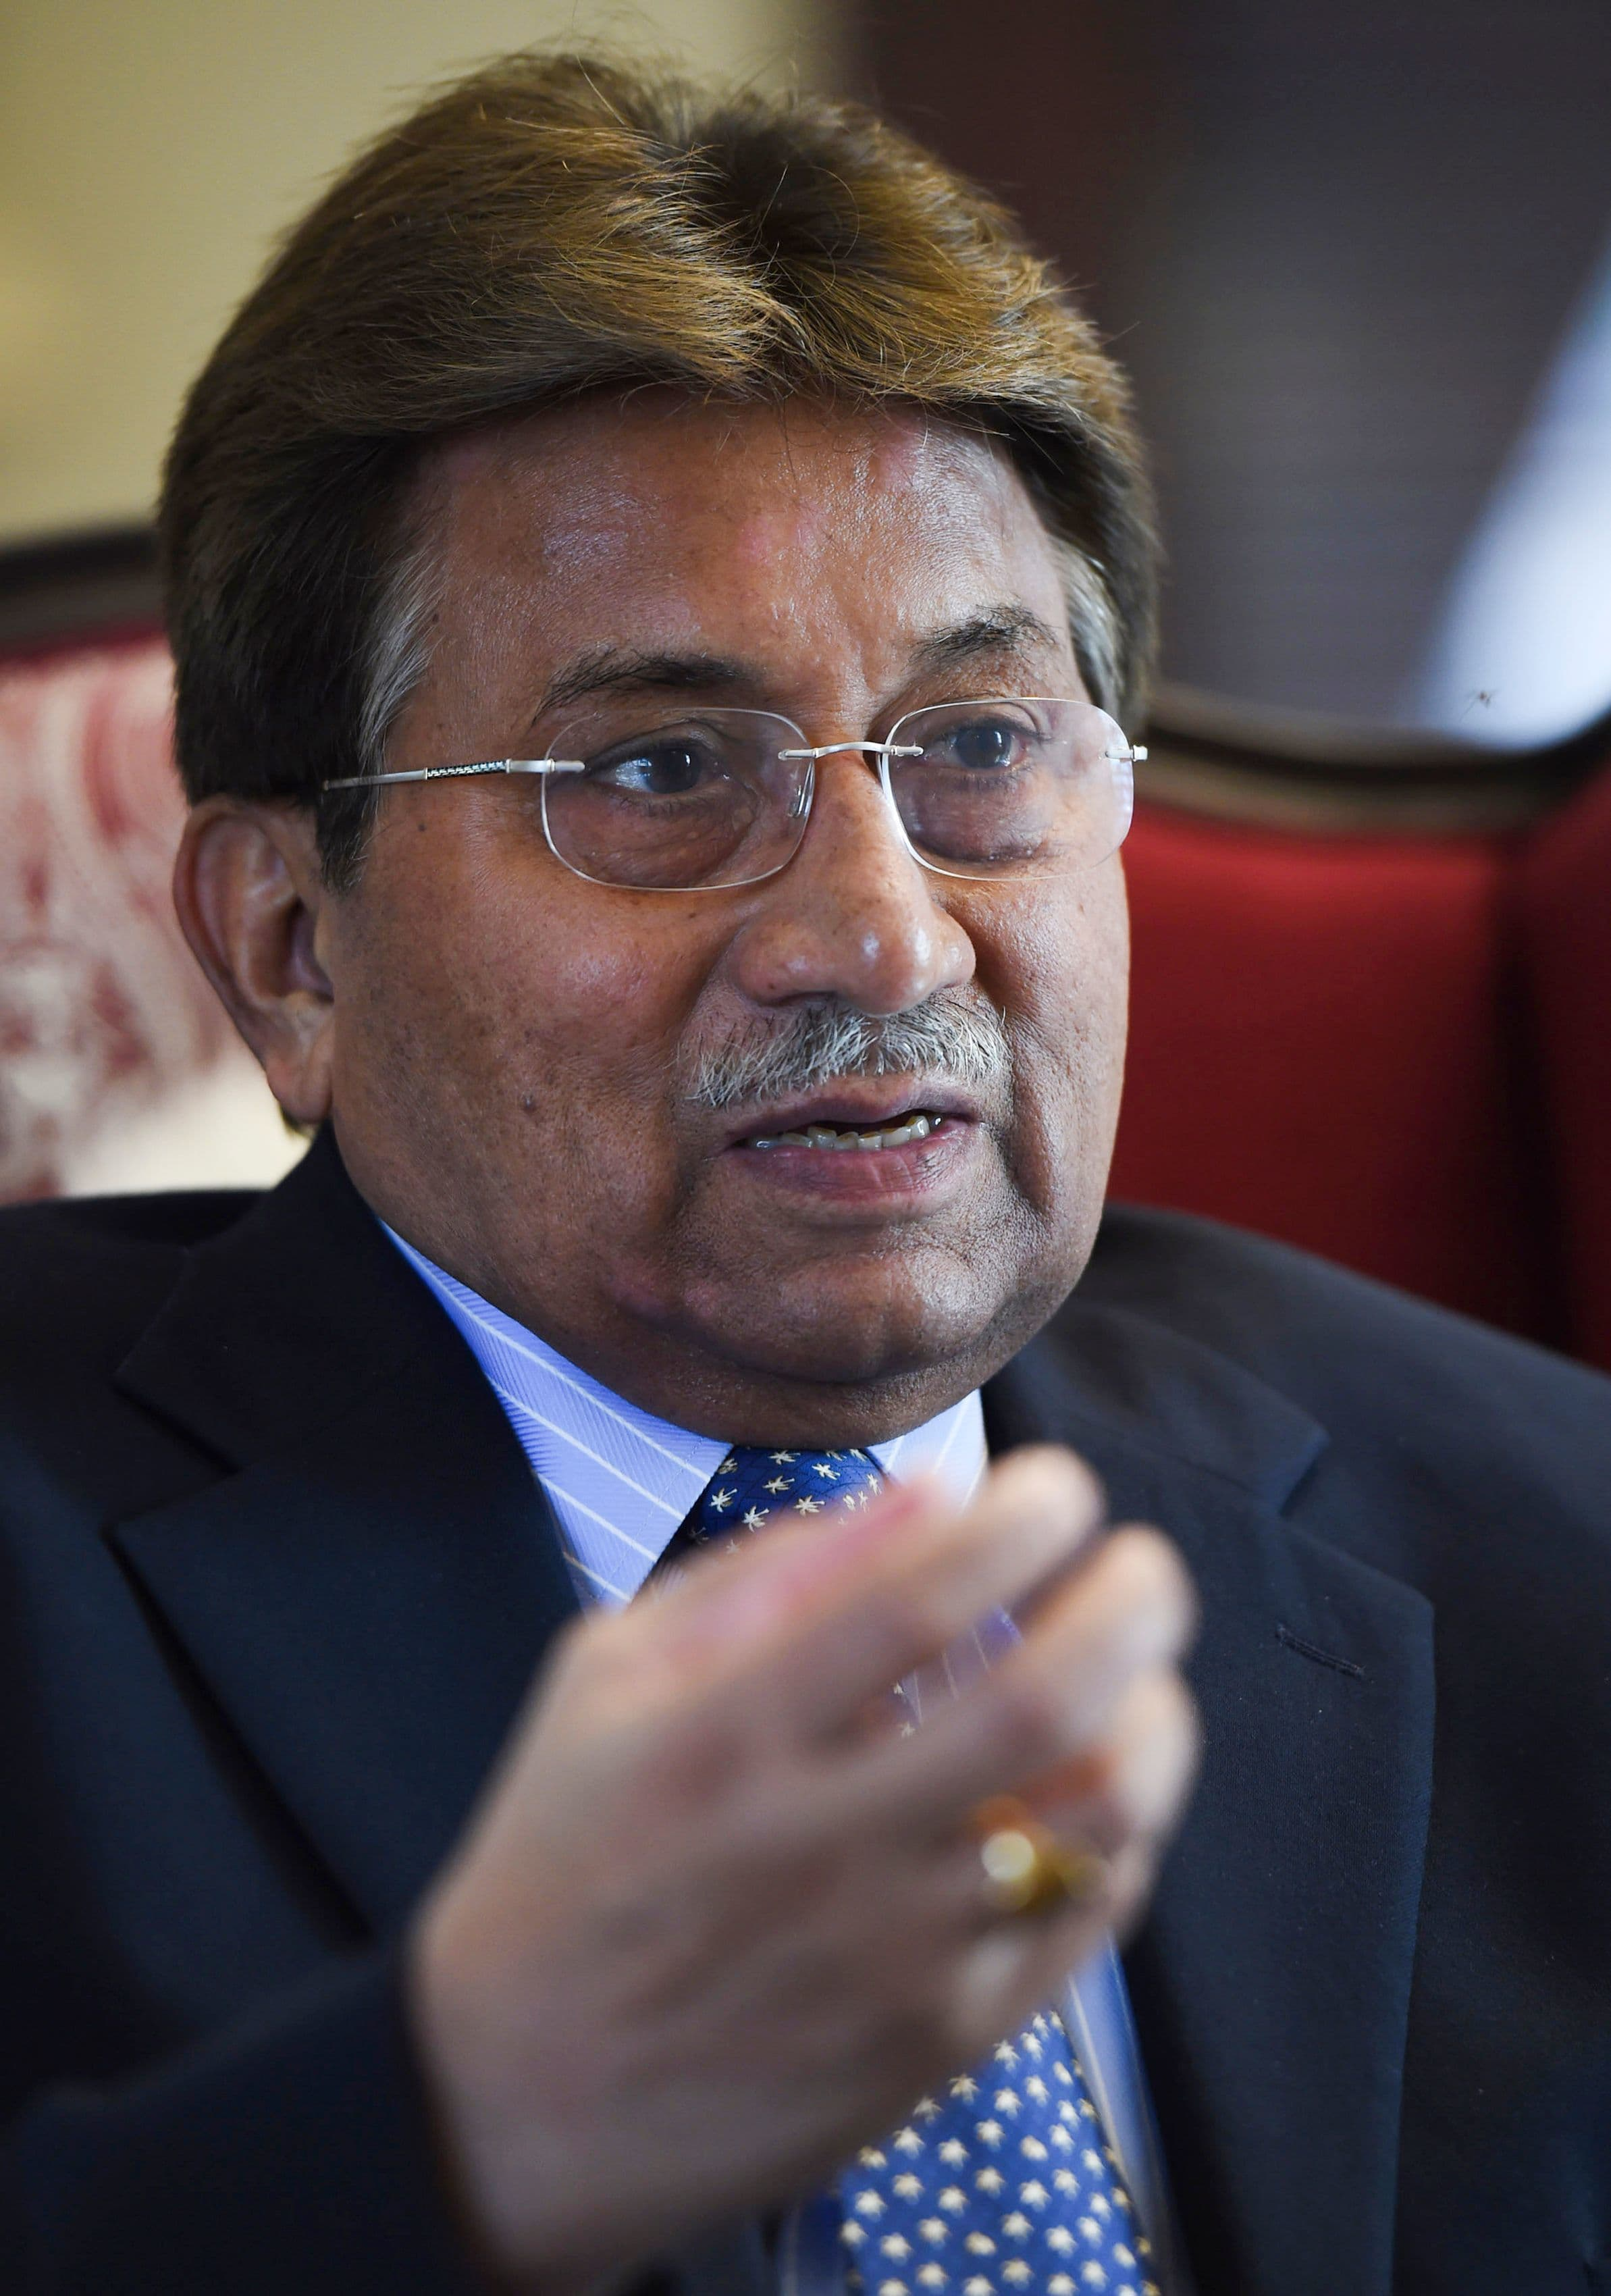 In this photo taken on November 14, 2014 Musharraf gestures during an interview with AFP in Karachi. — AFP